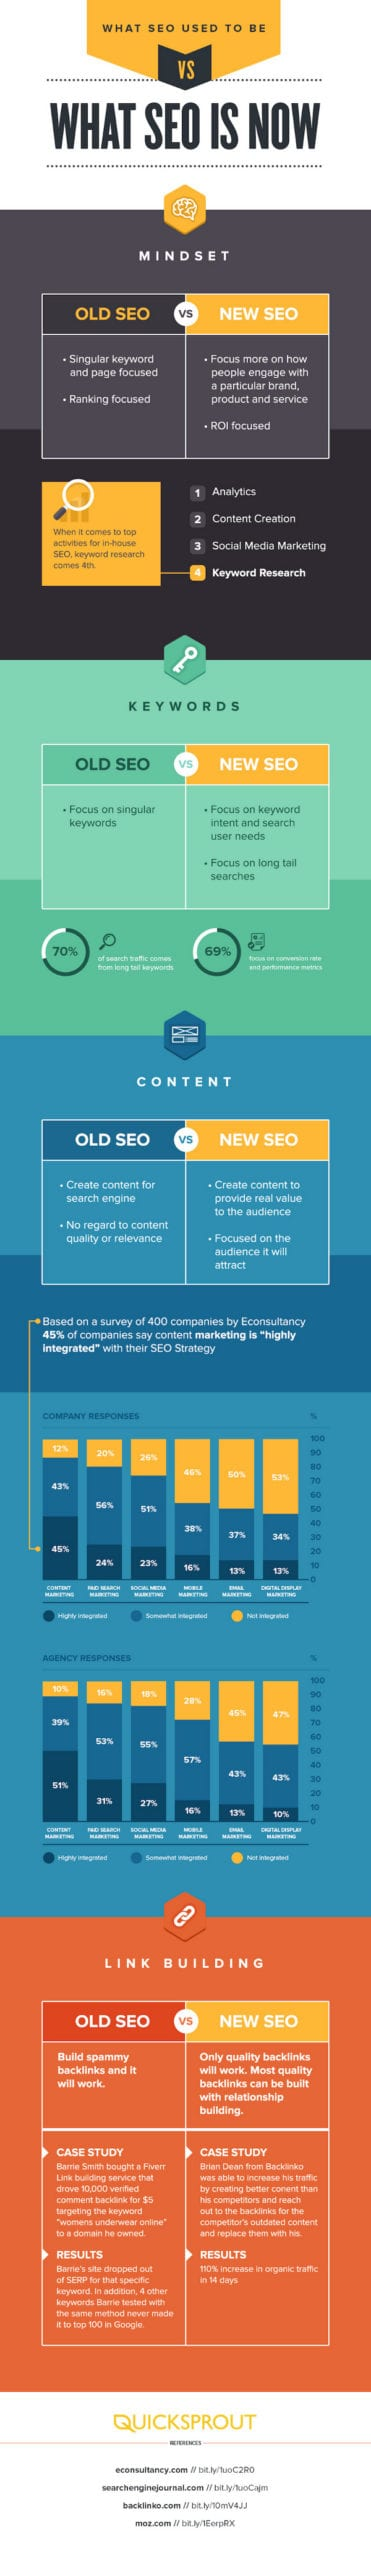 SEO-Strategies-for-2015-2016